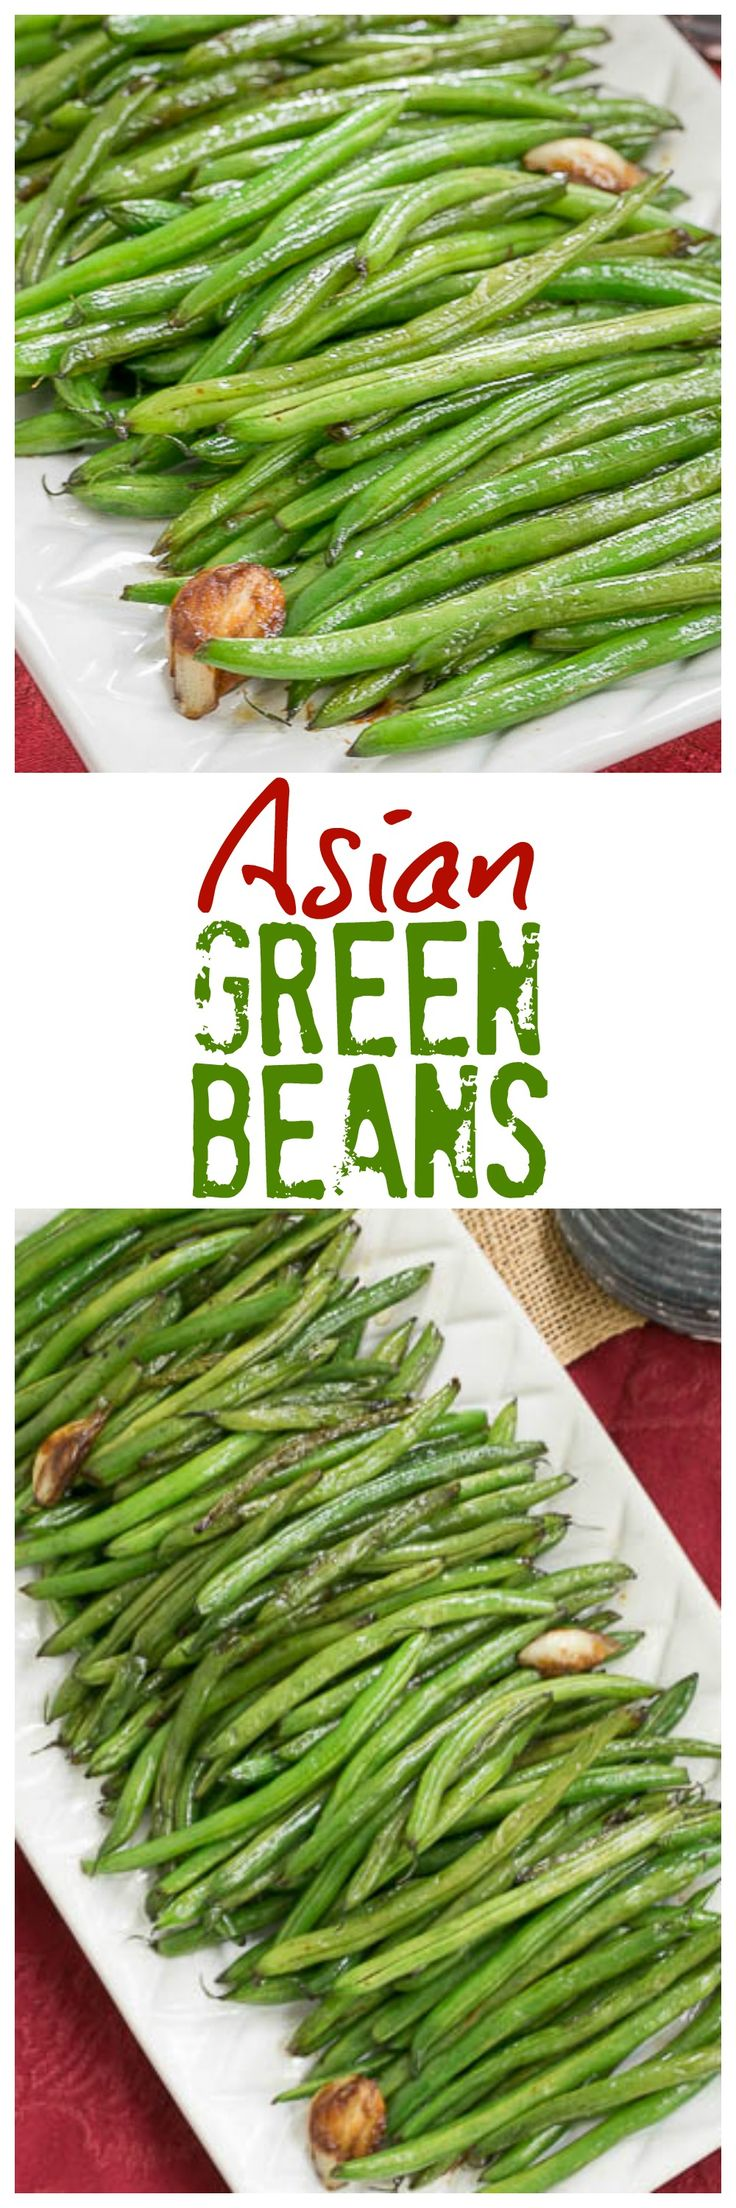 Asian Green Beans | An easy, irresistibe side dish with an Asian twist! @lizzydo